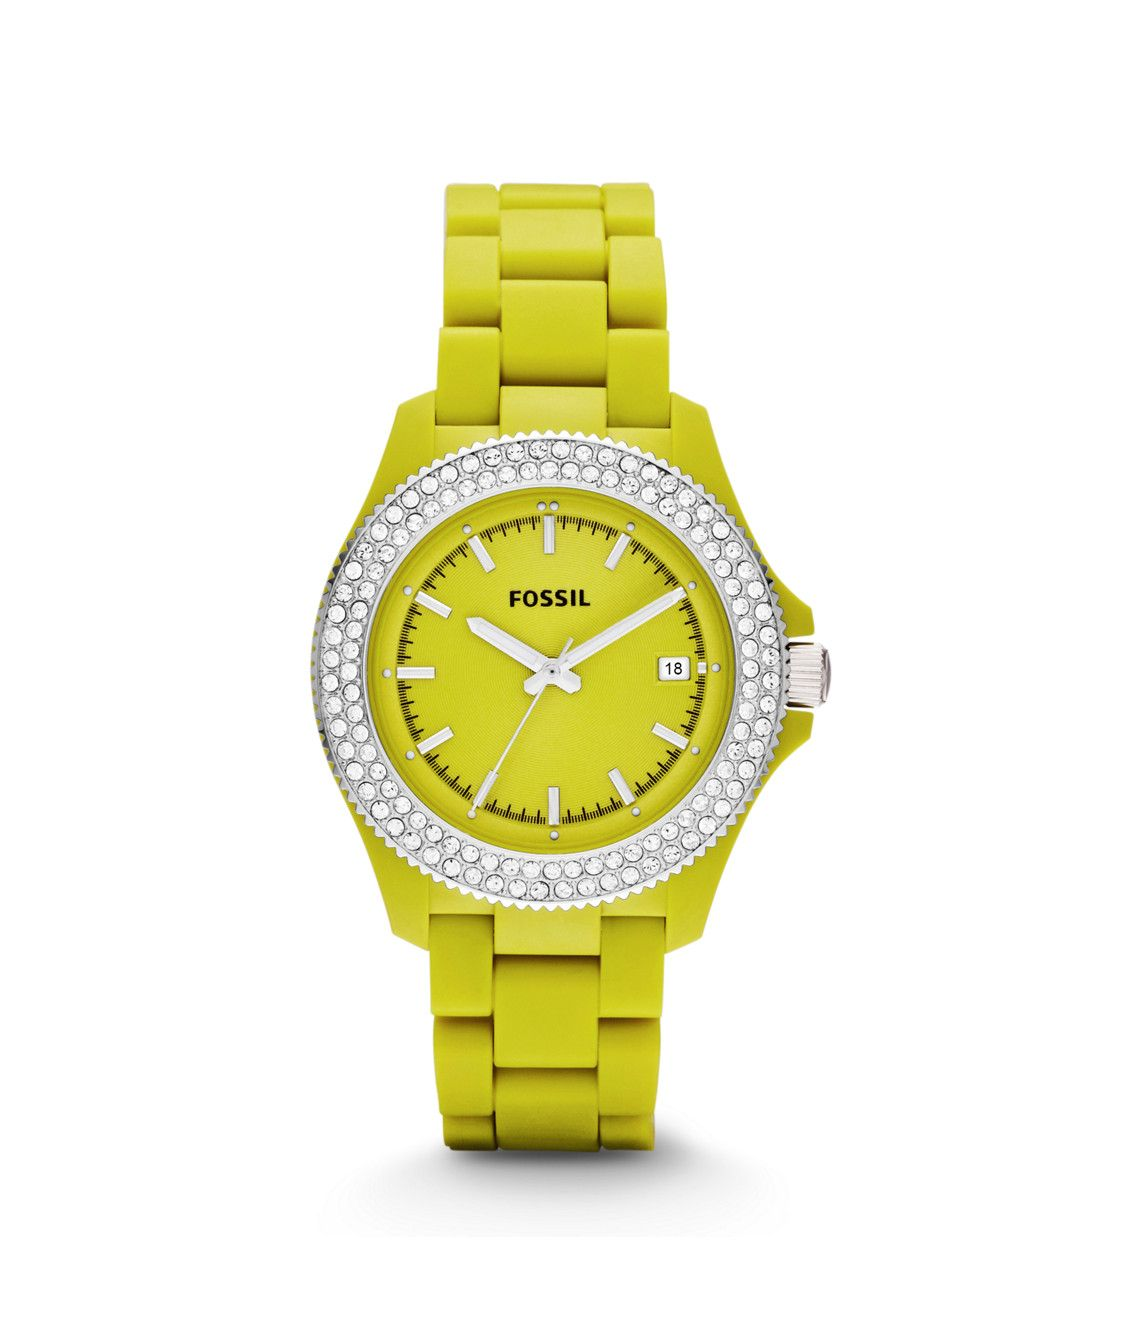 Fossil Female Dress Watch  AM4470 Lime Analog          Sale price. $74.95